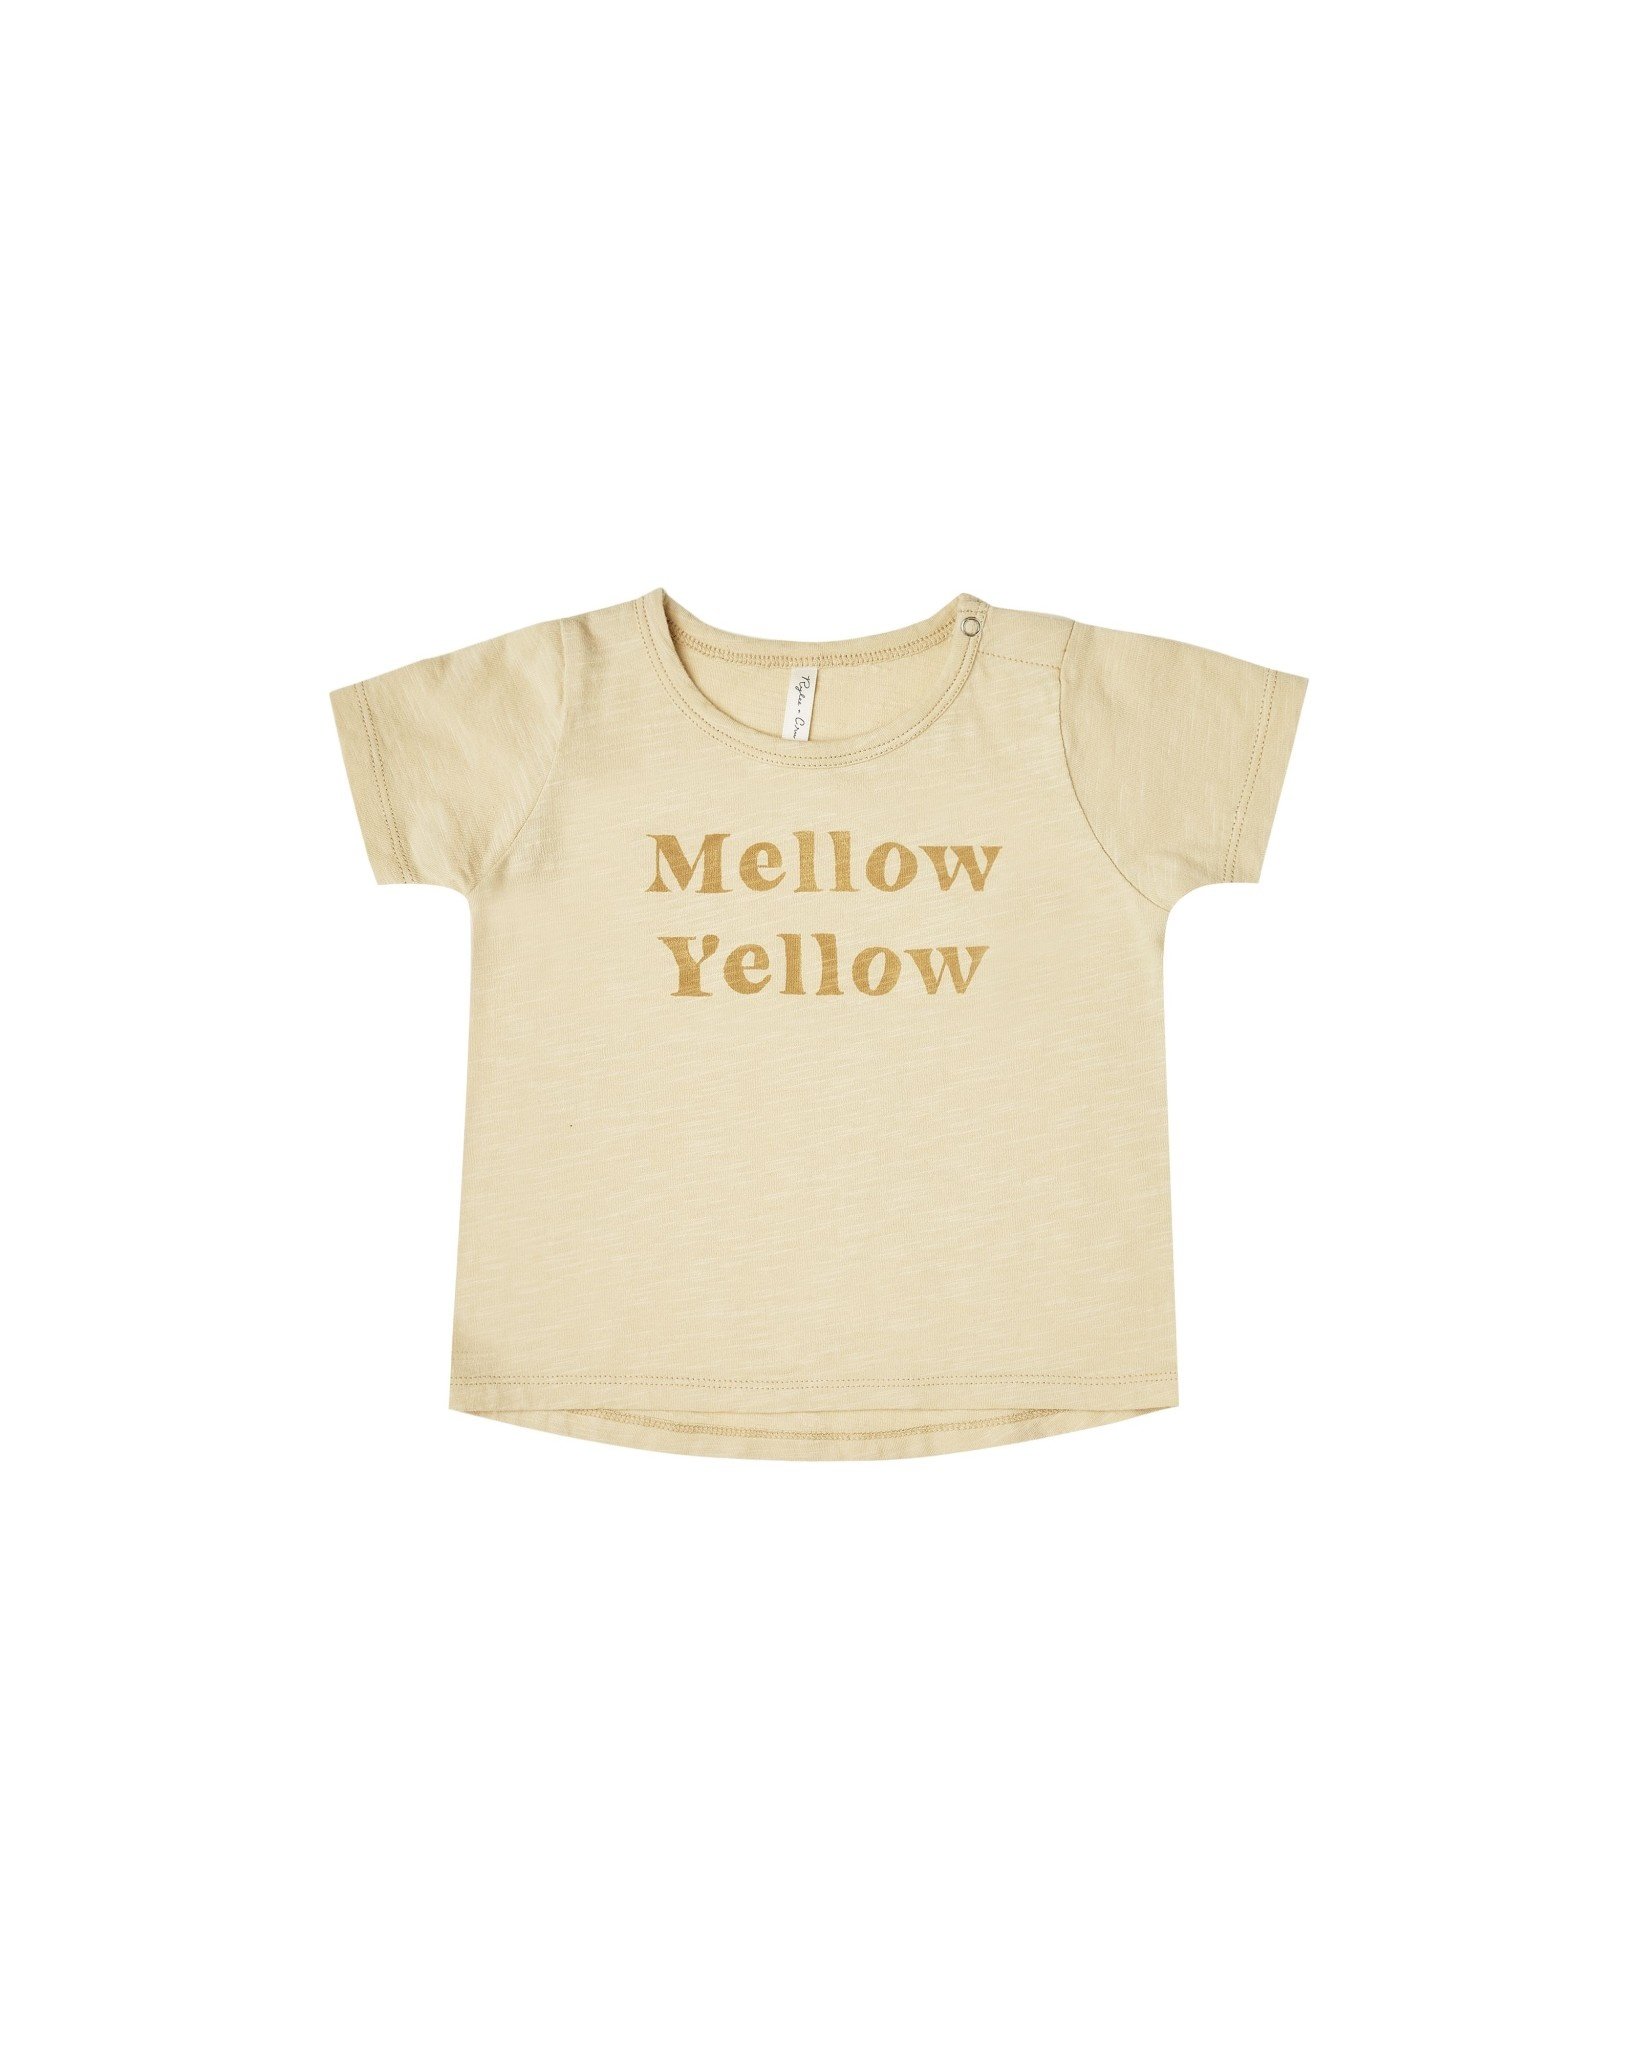 RYLEE AND CRU Mellow Yellow Baby Tee